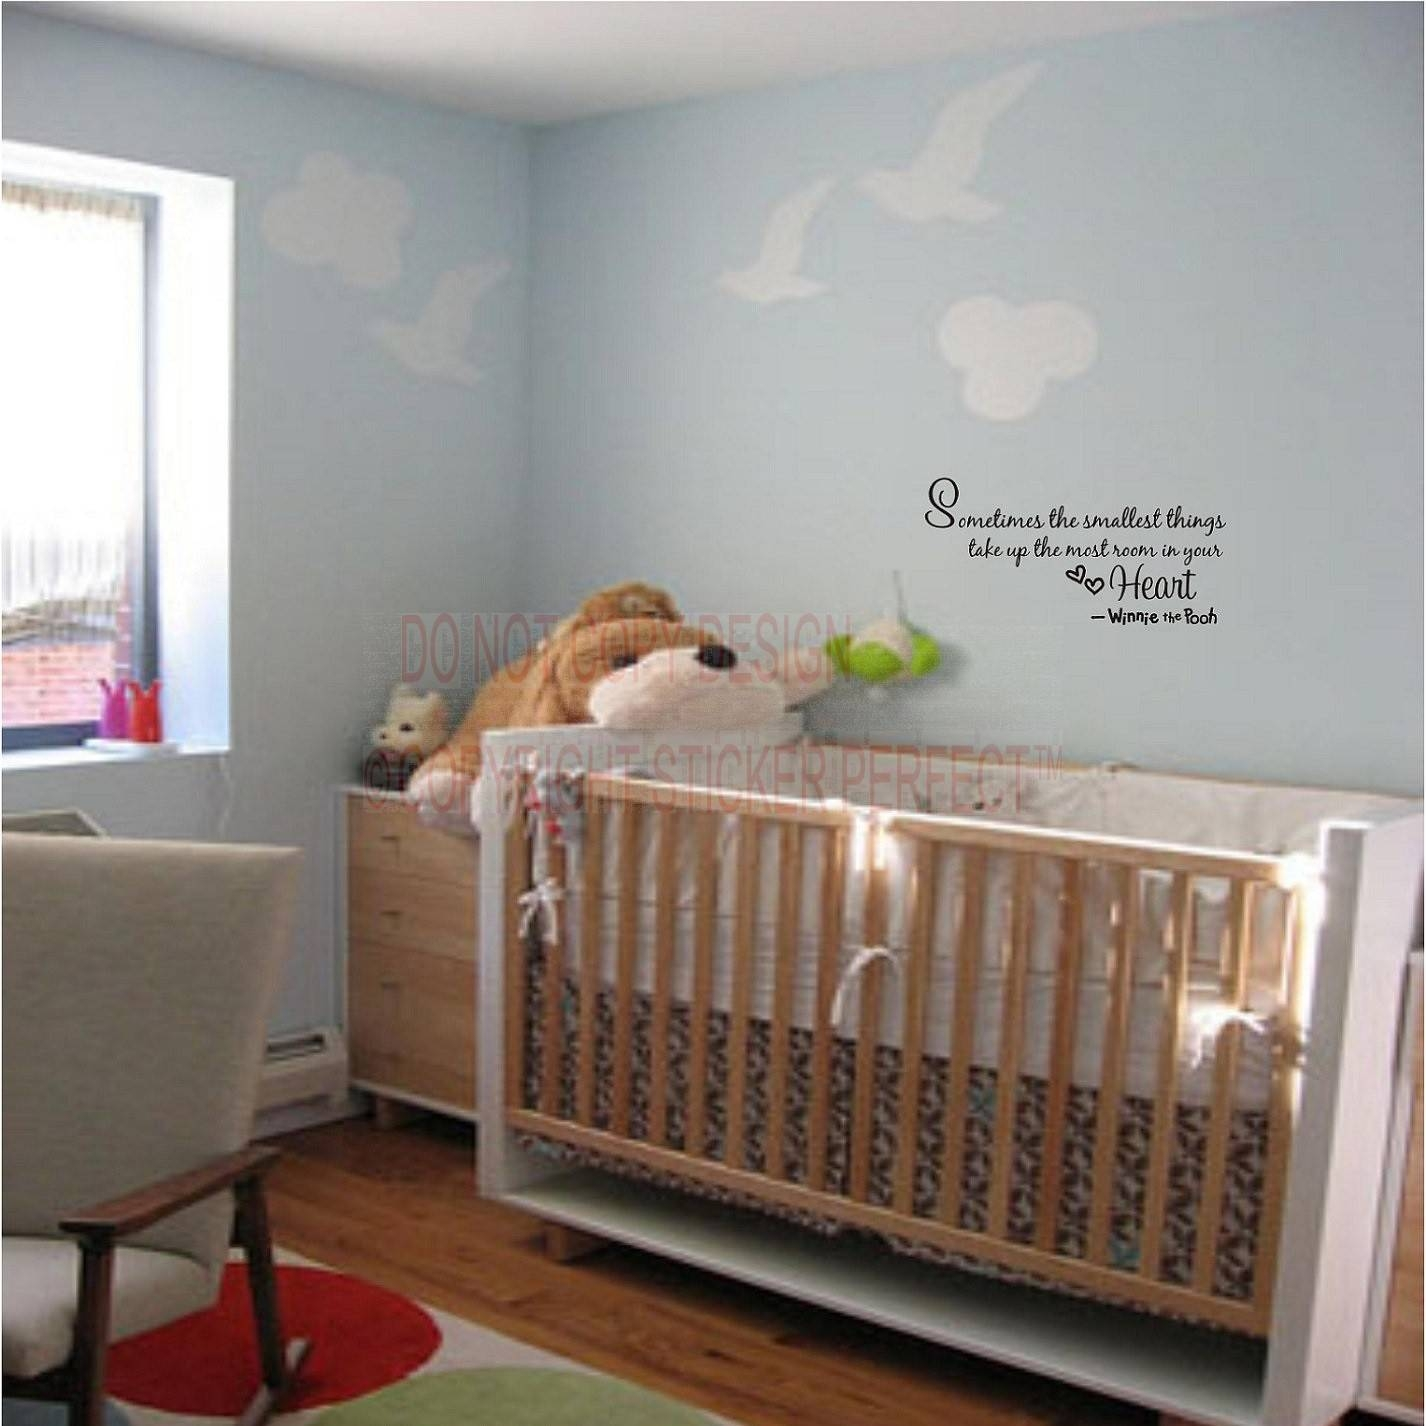 Best Sellers Regarding Latest Winnie The Pooh Nursery Quotes Wall Art (View 18 of 20)